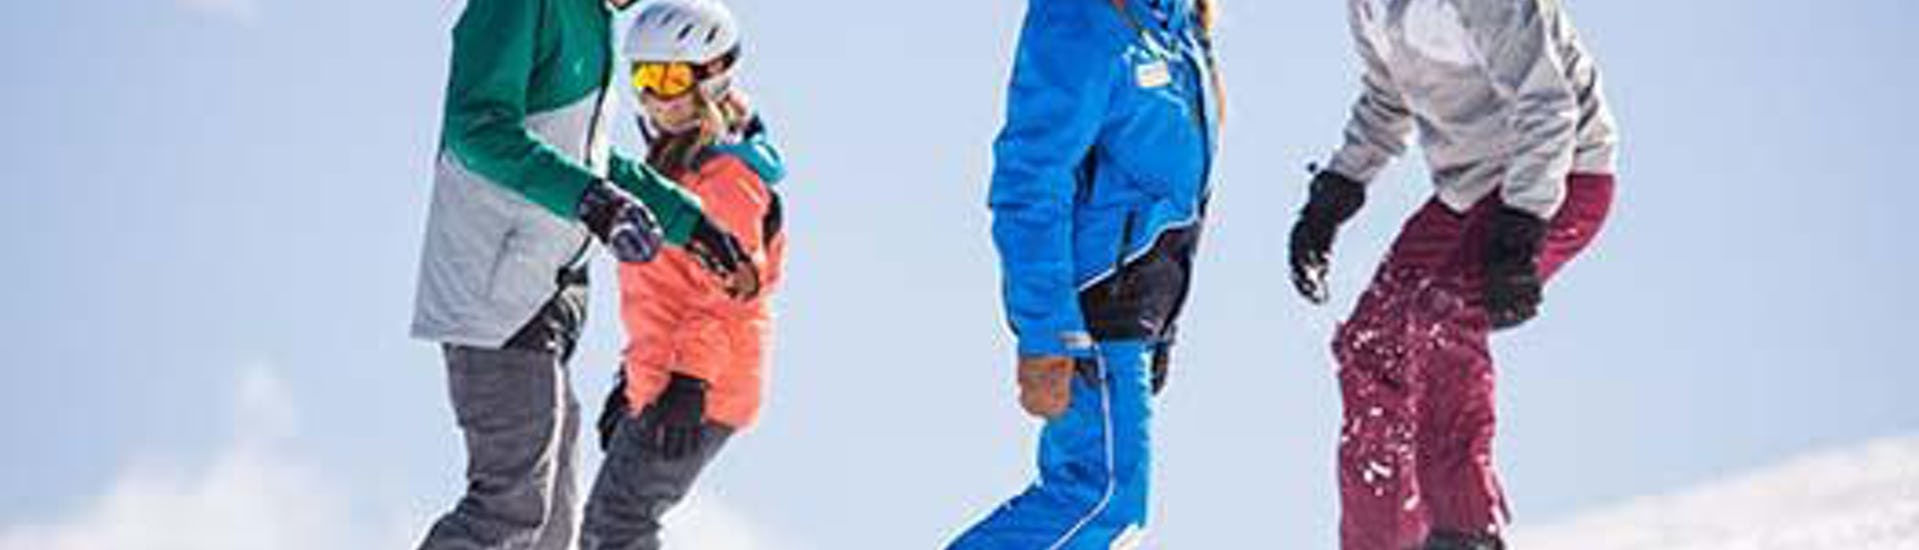 Snowboarders ride down the piste in a relaxed way during their Snowboarding Lessons for Kids & Adults - All Levels with the ski school Skischule Zugspitze-Grainau.